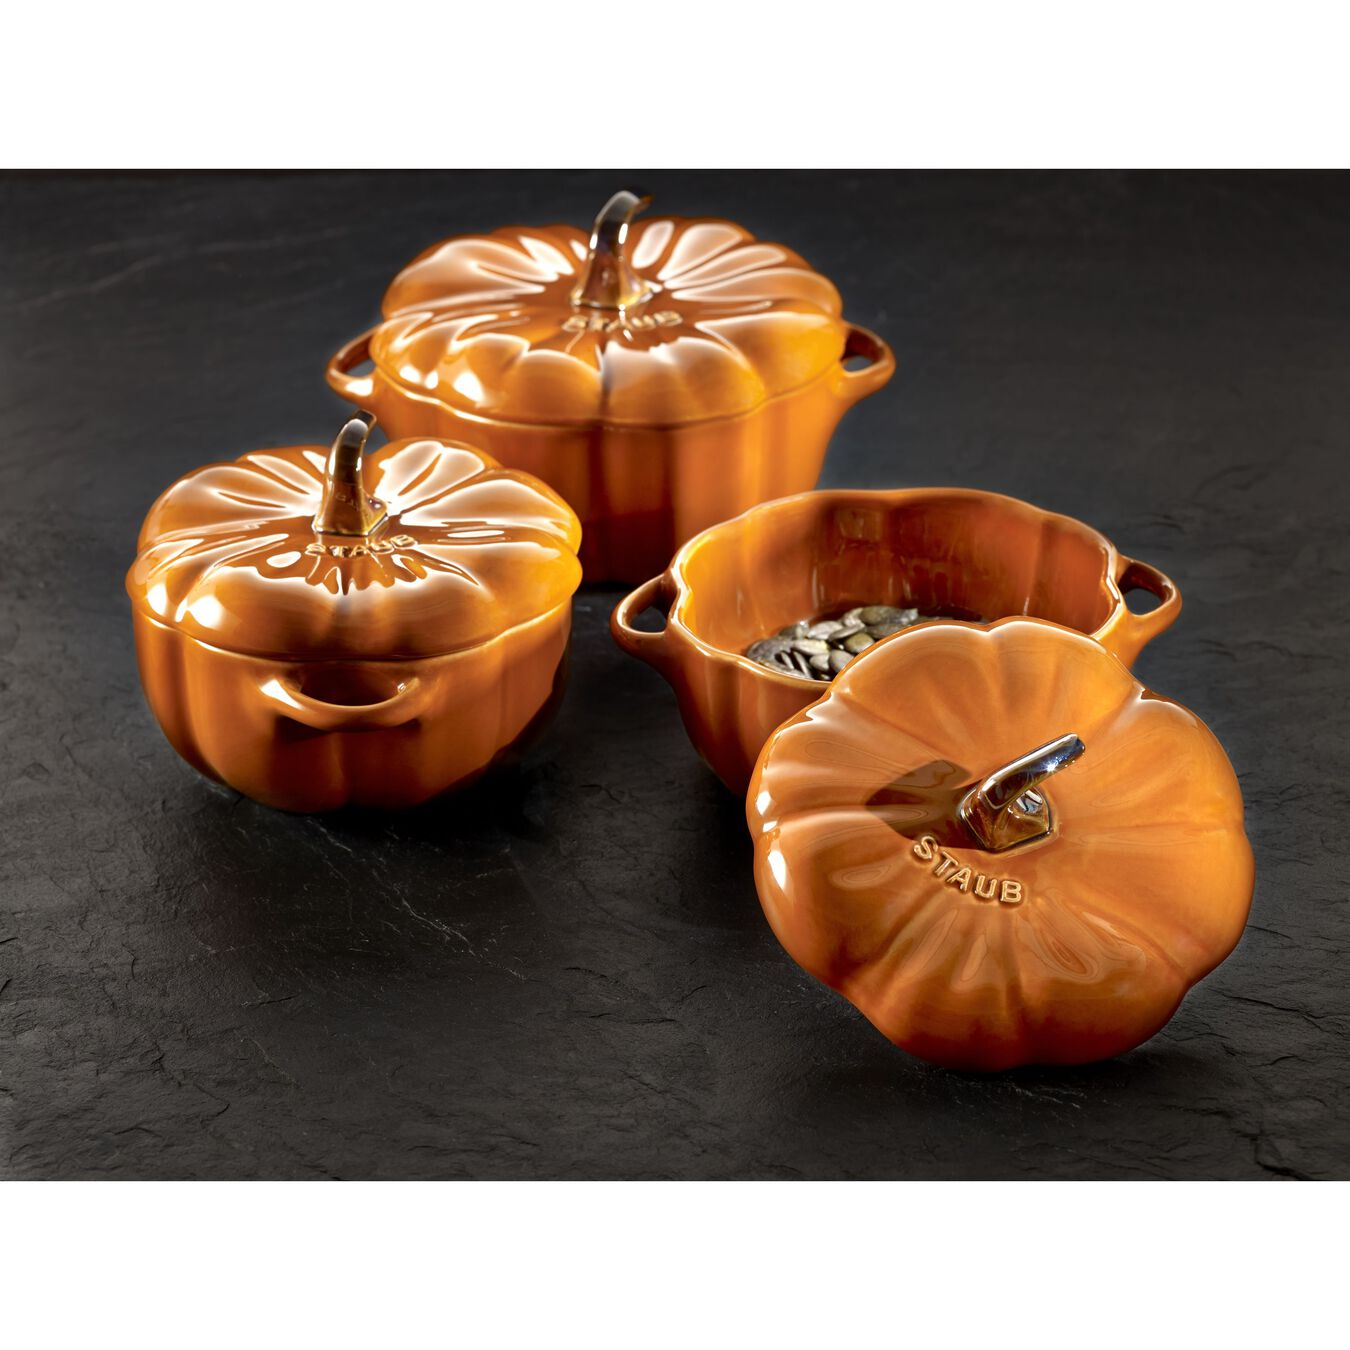 16-oz Petite Pumpkin Cocotte - Burnt Orange,,large 4